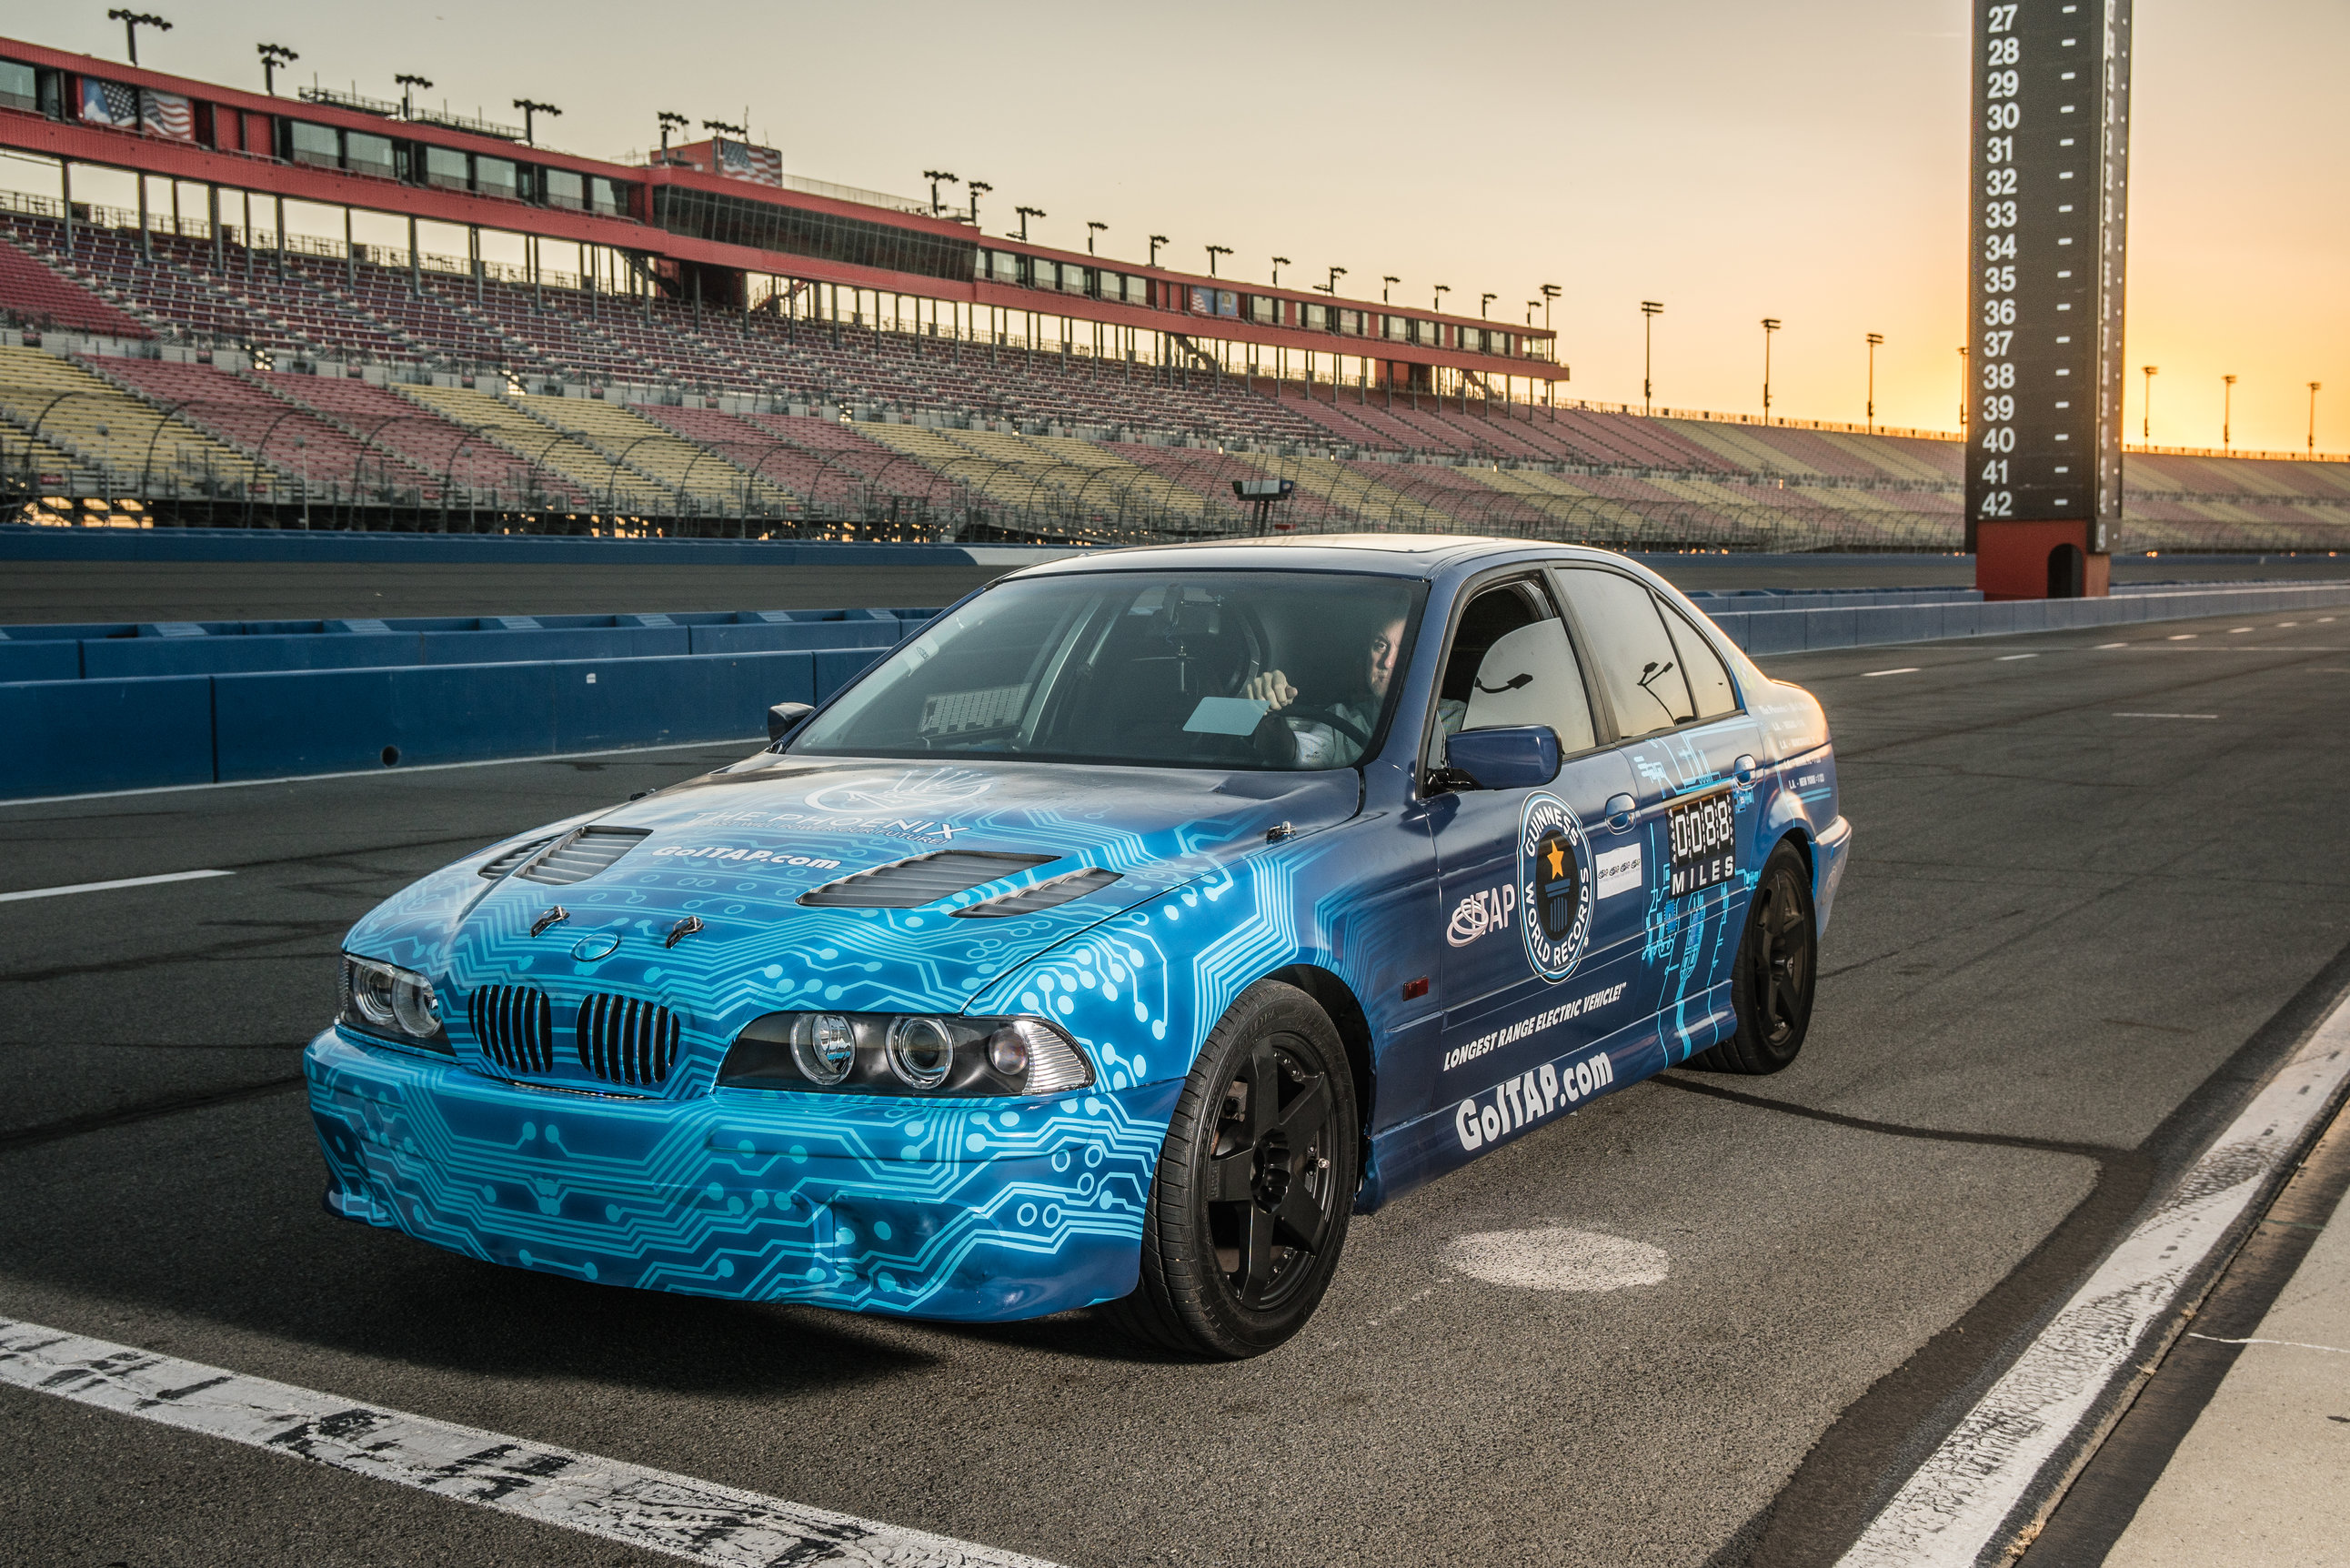 blue racing car on track